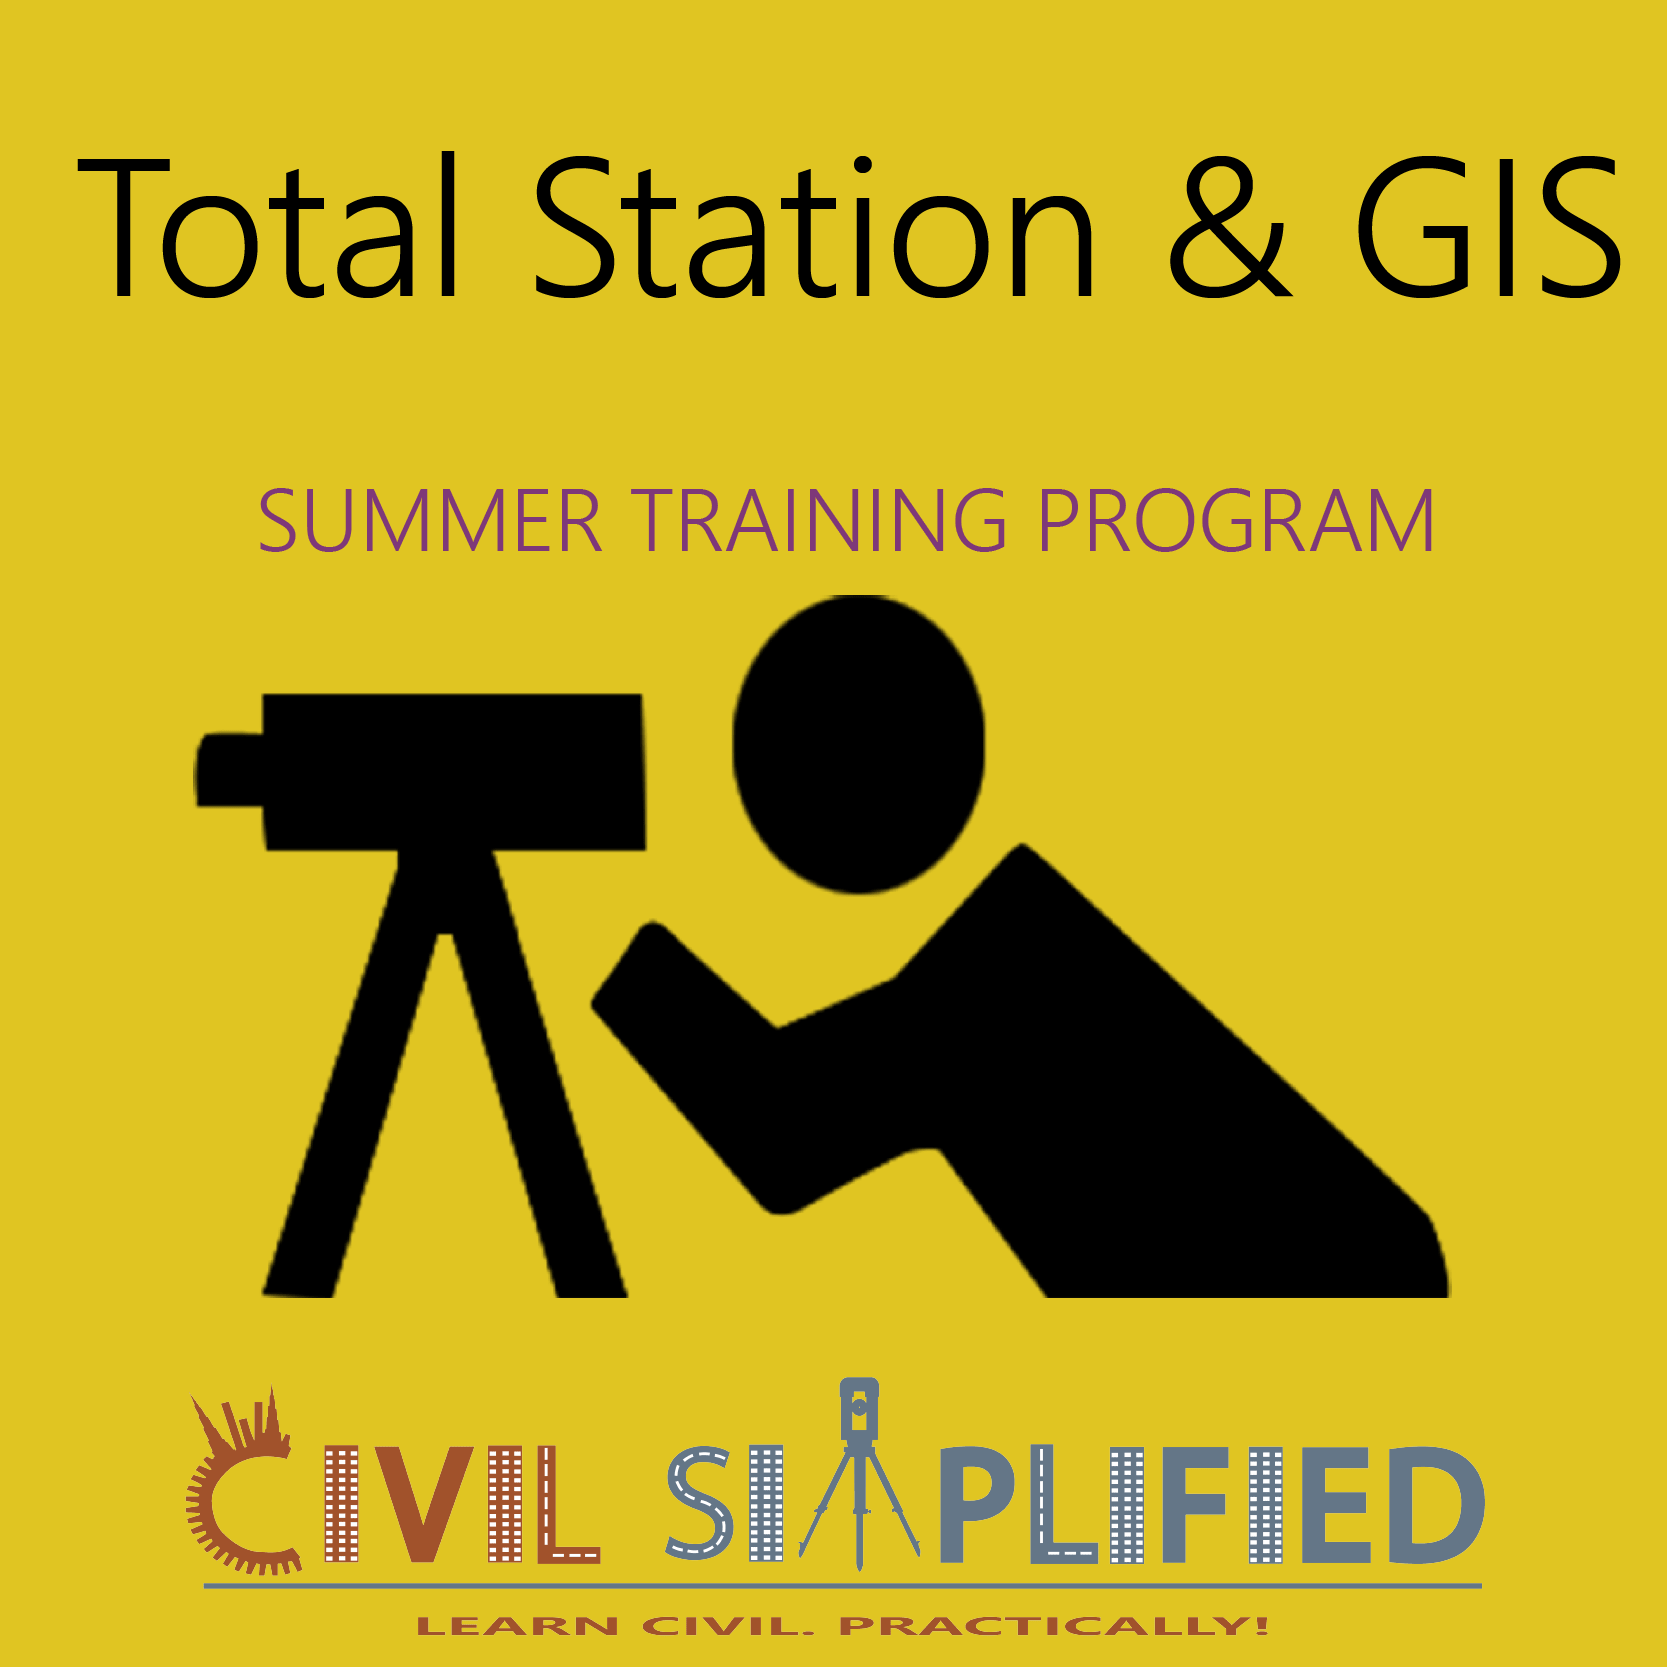 Summer Training Program in Civil Engineering - Total Station and GIS  at Skyfi Labs Center, Gateforum, Near Saket Metro station Workshop